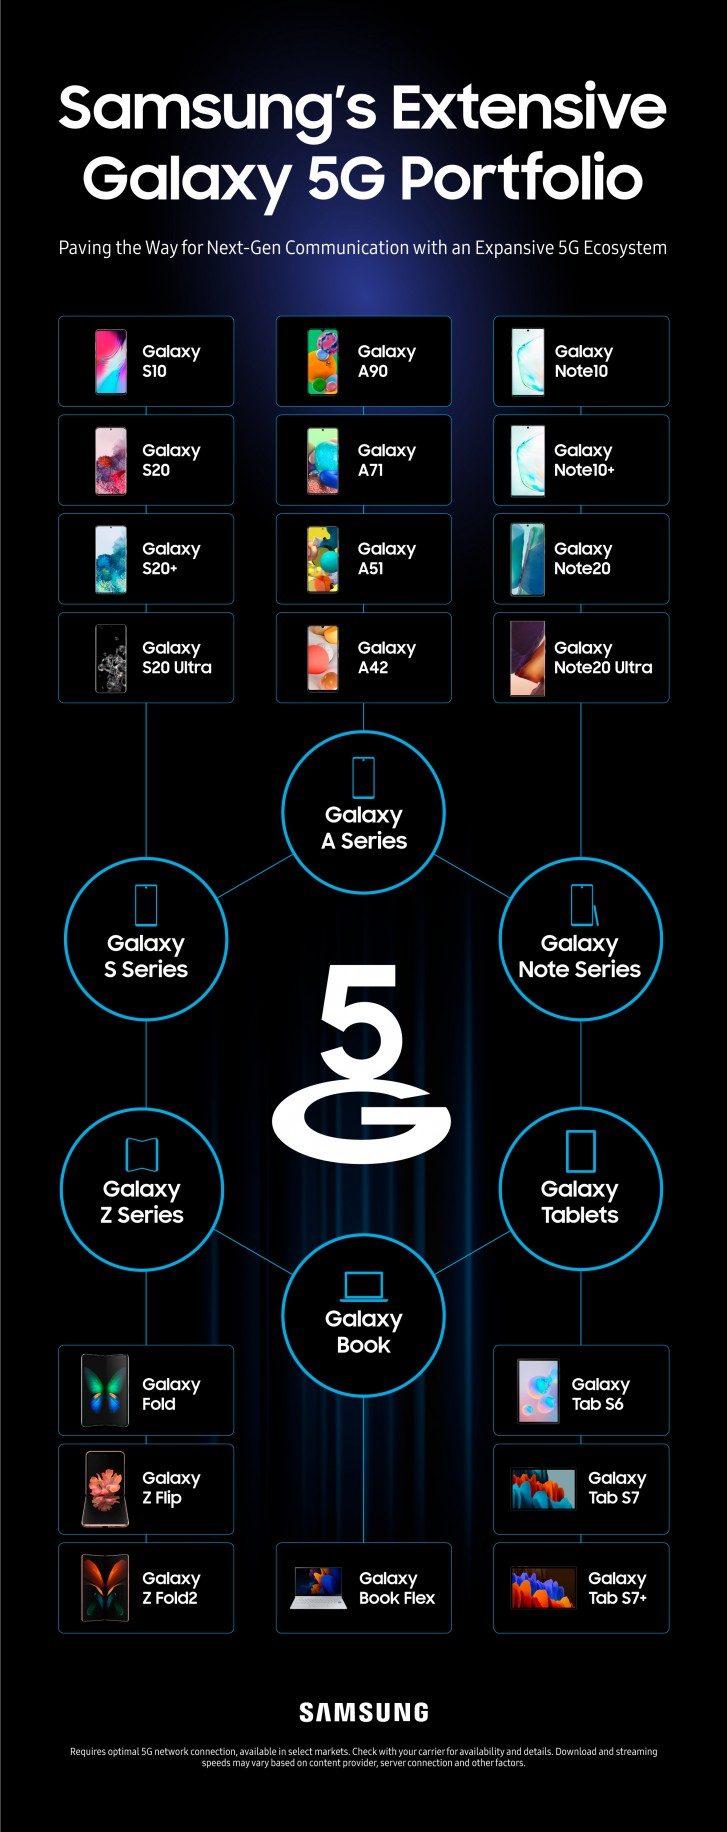 Infographic maps every 5G device that Samsung has launched so far